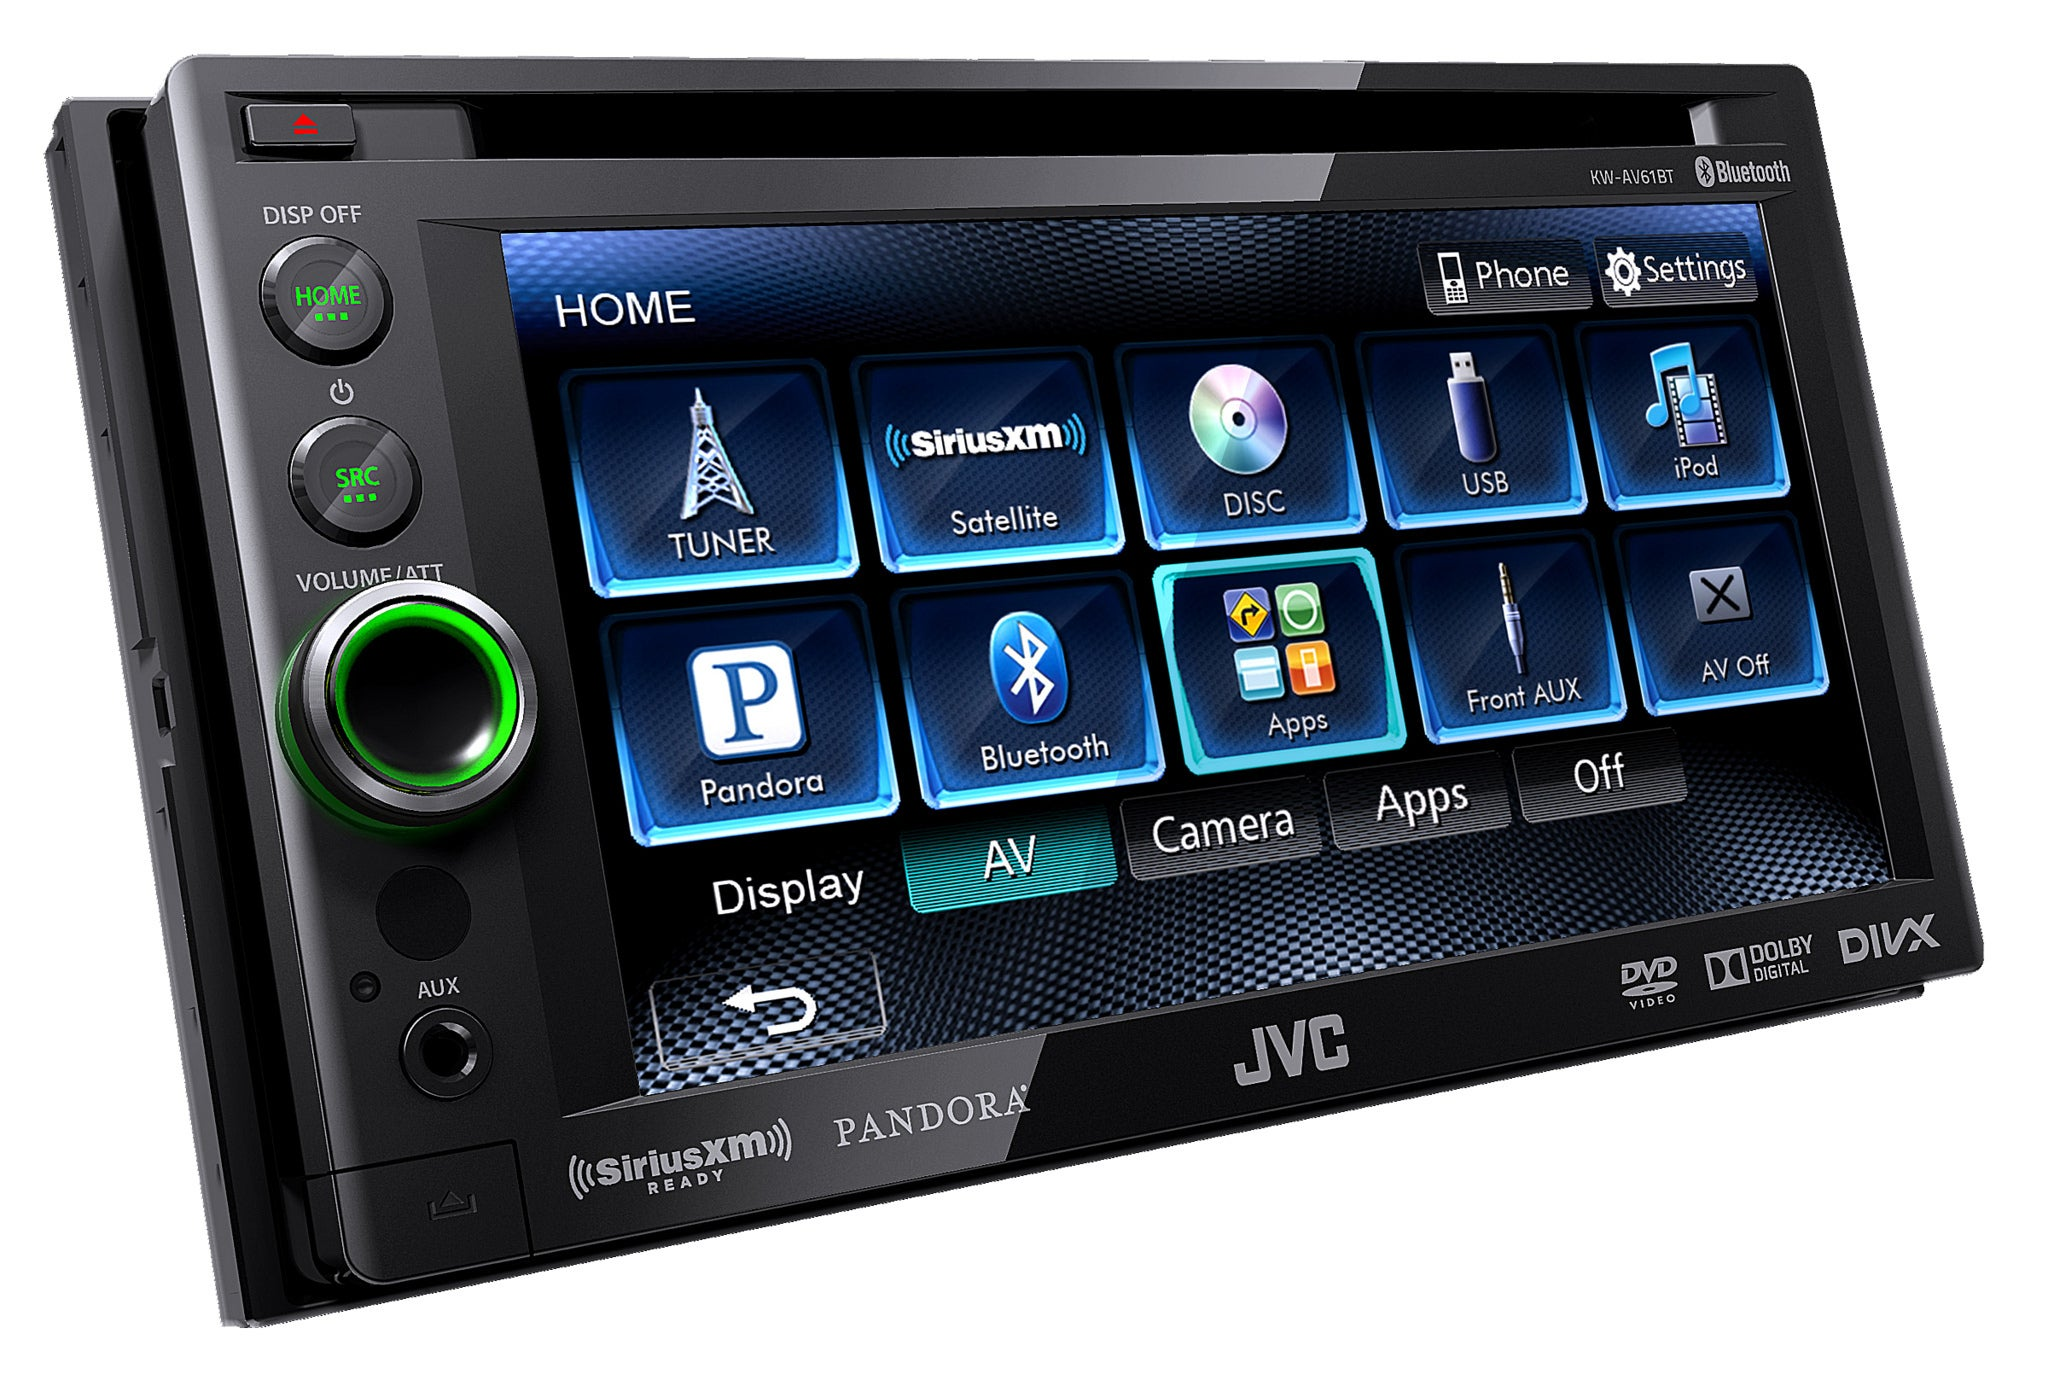 The jvc kw av61bt marries old style car stereo design with new style display navigation